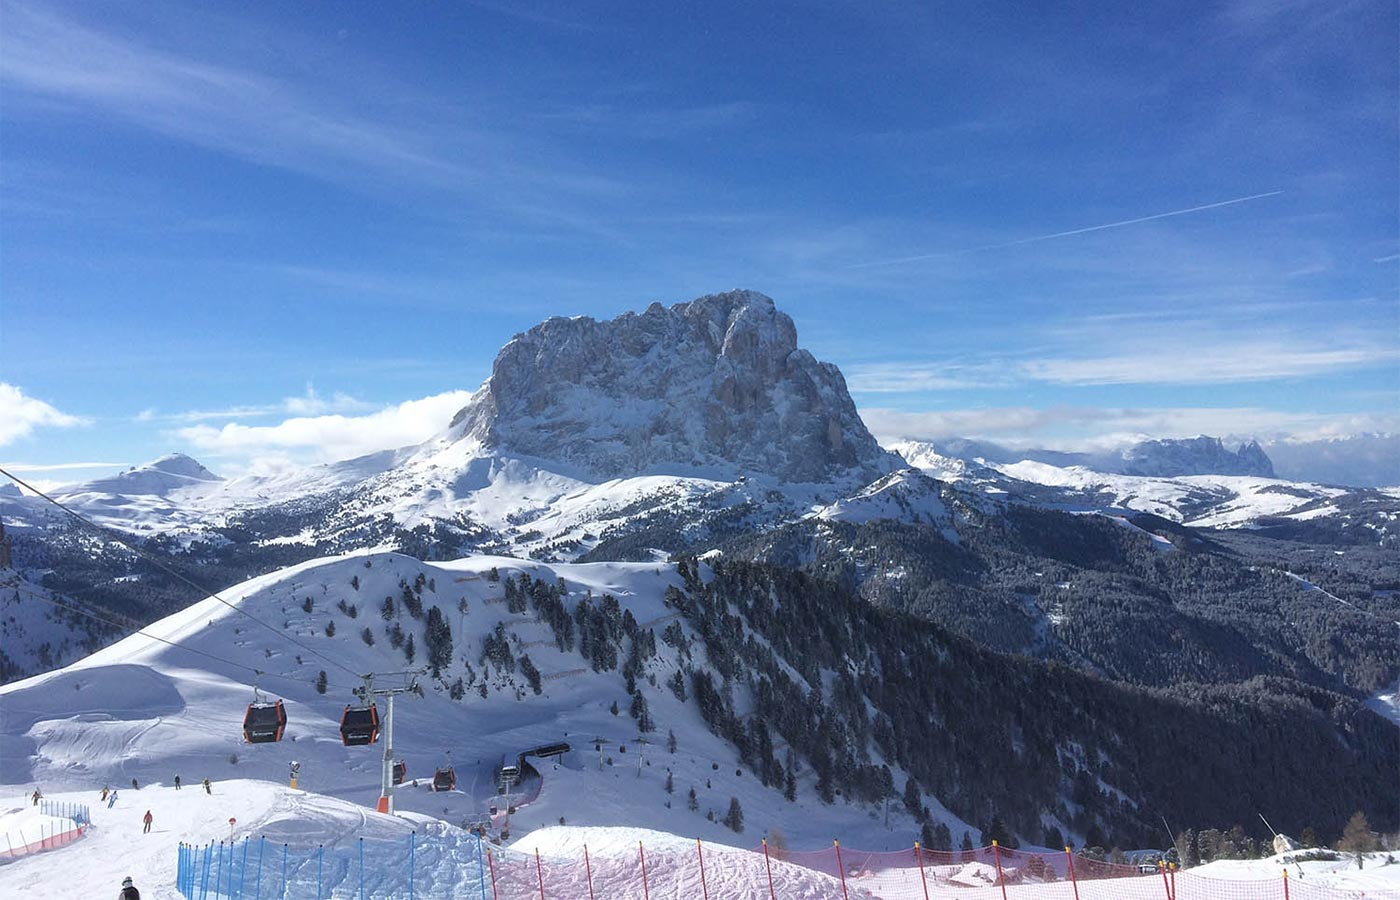 Ski resort in Selva Val Gardena